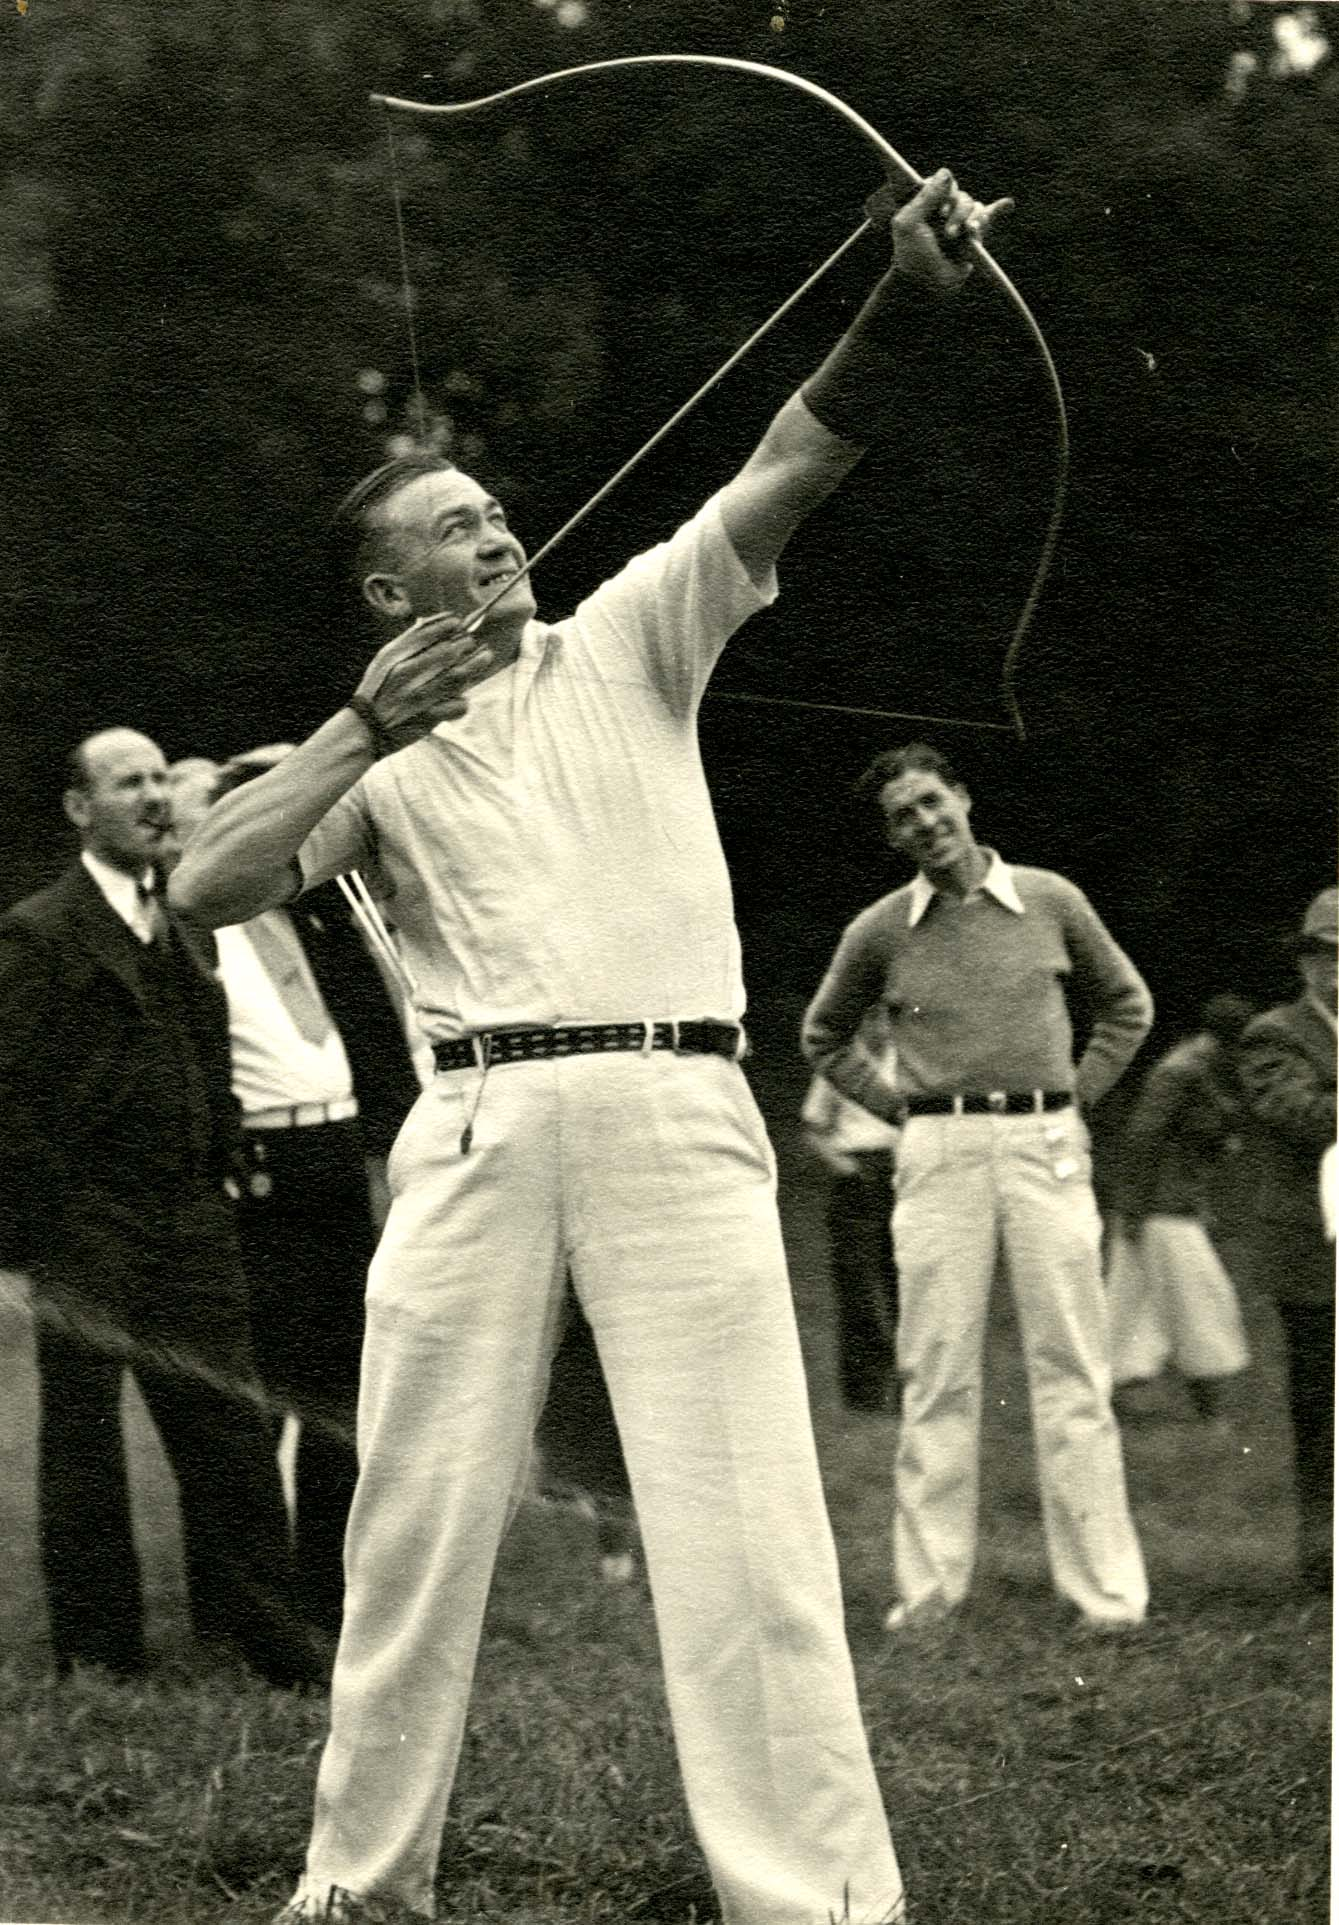 Archery [possibly the National Tournament], circa 1933